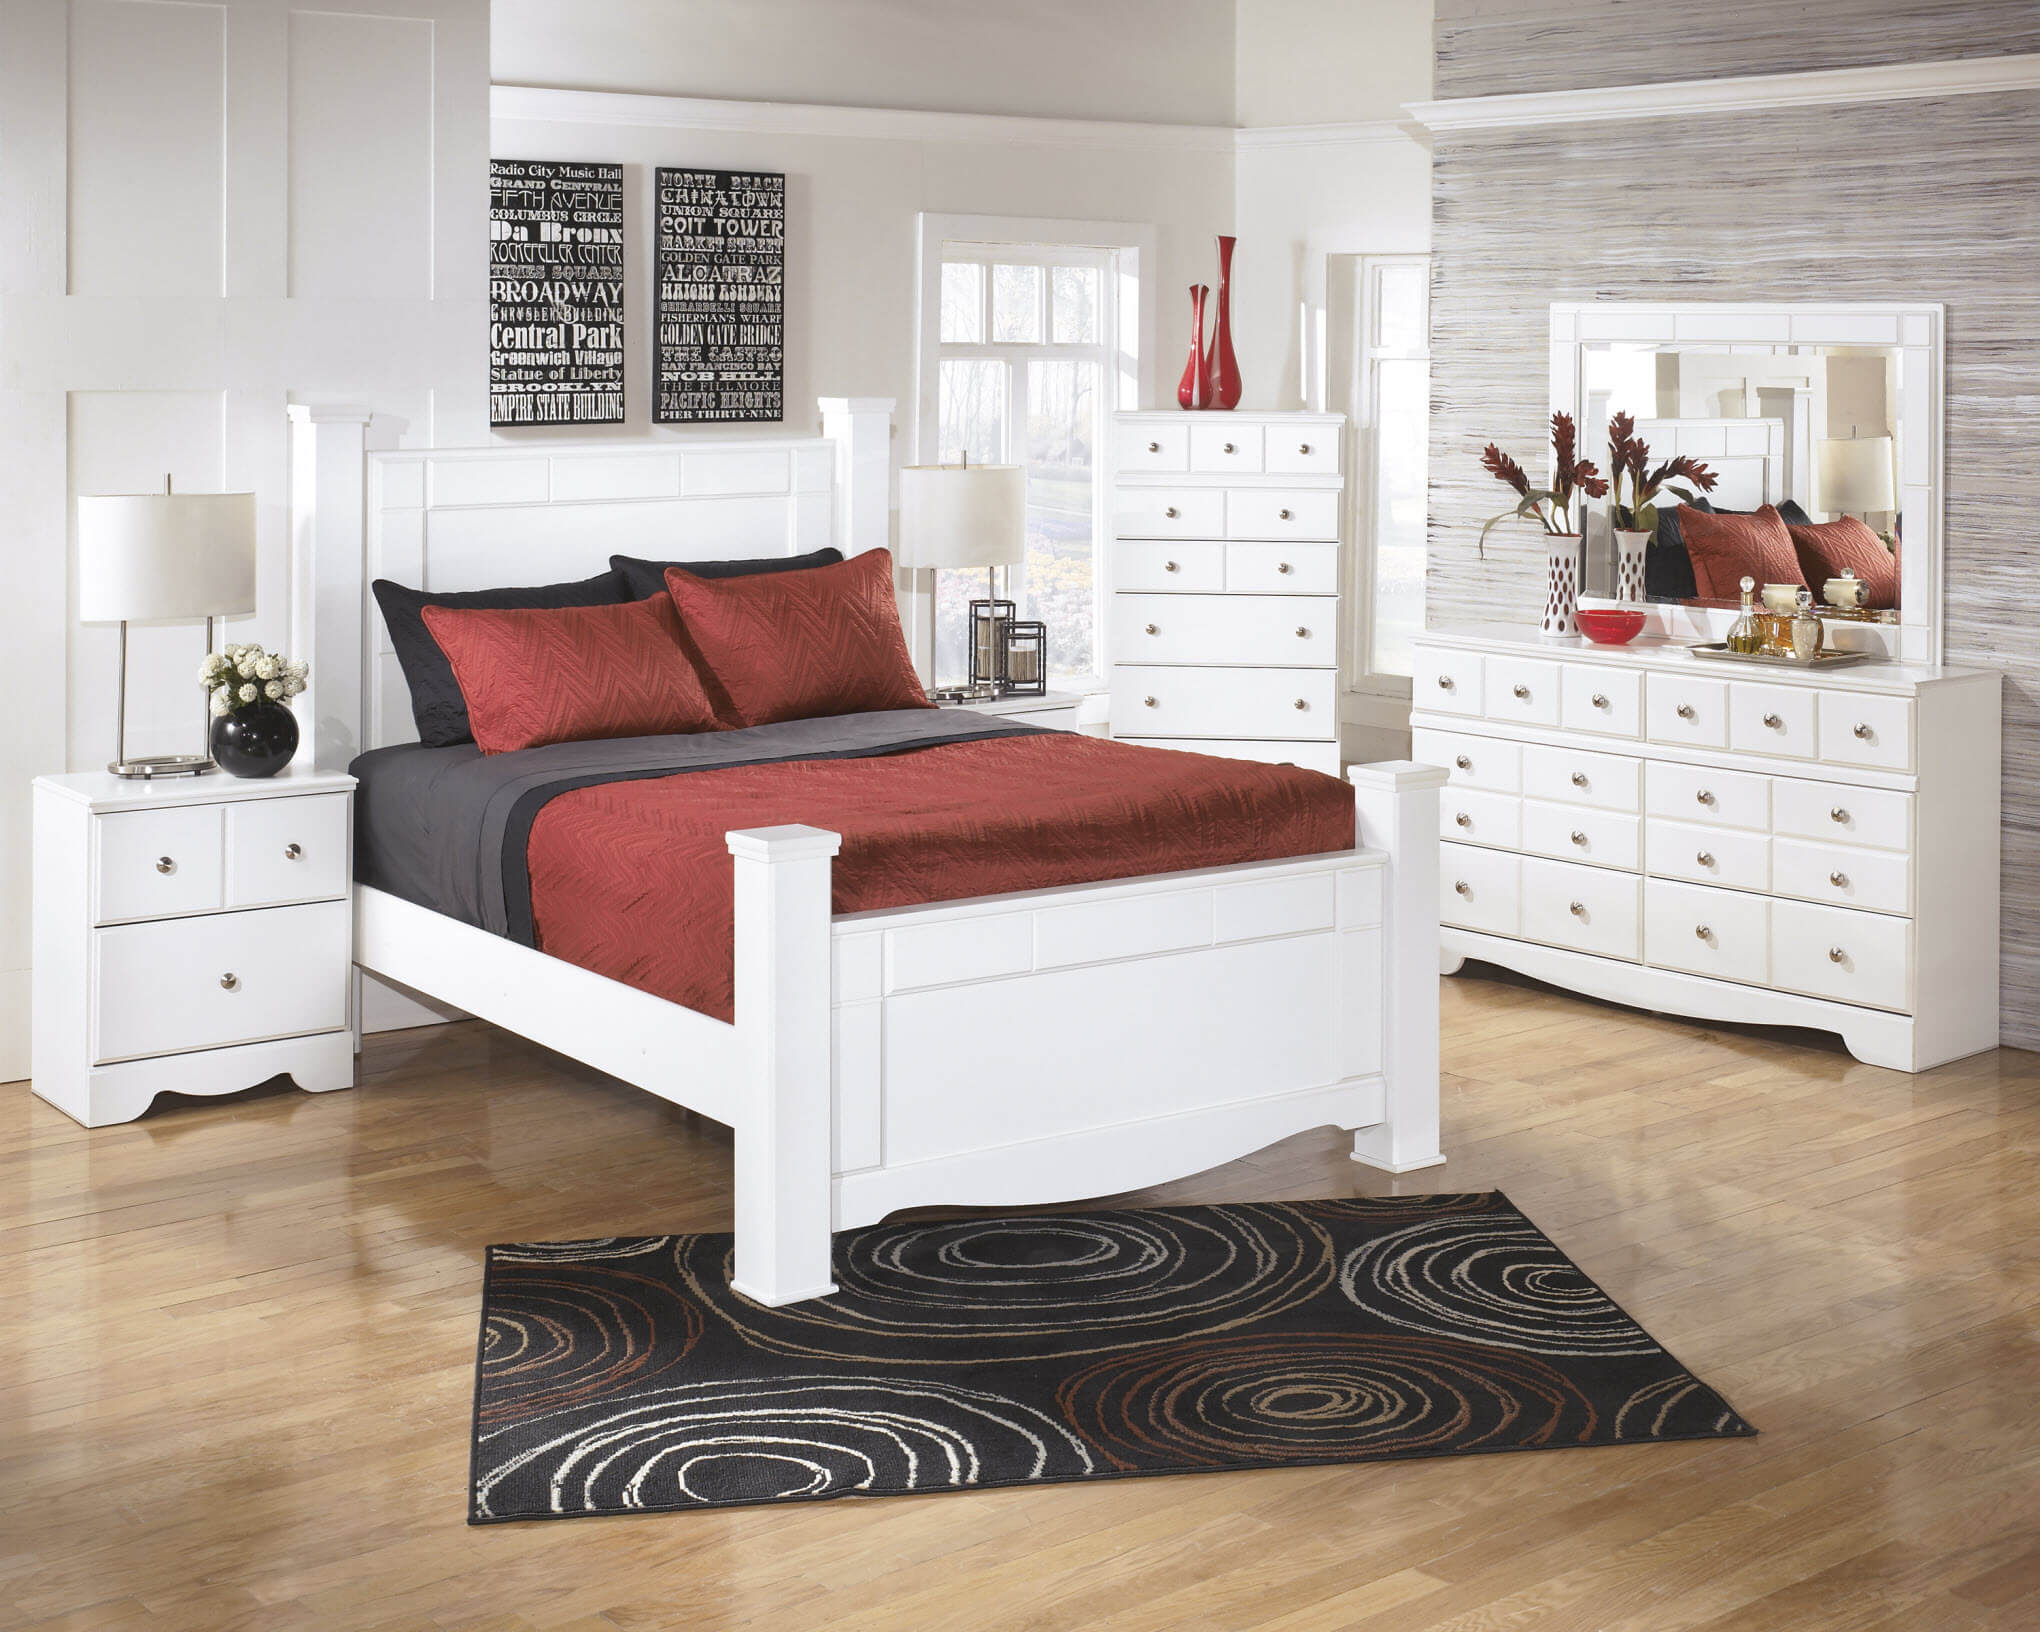 ashleys furniture beds weeki bedroom set bedroom furniture sets 10122